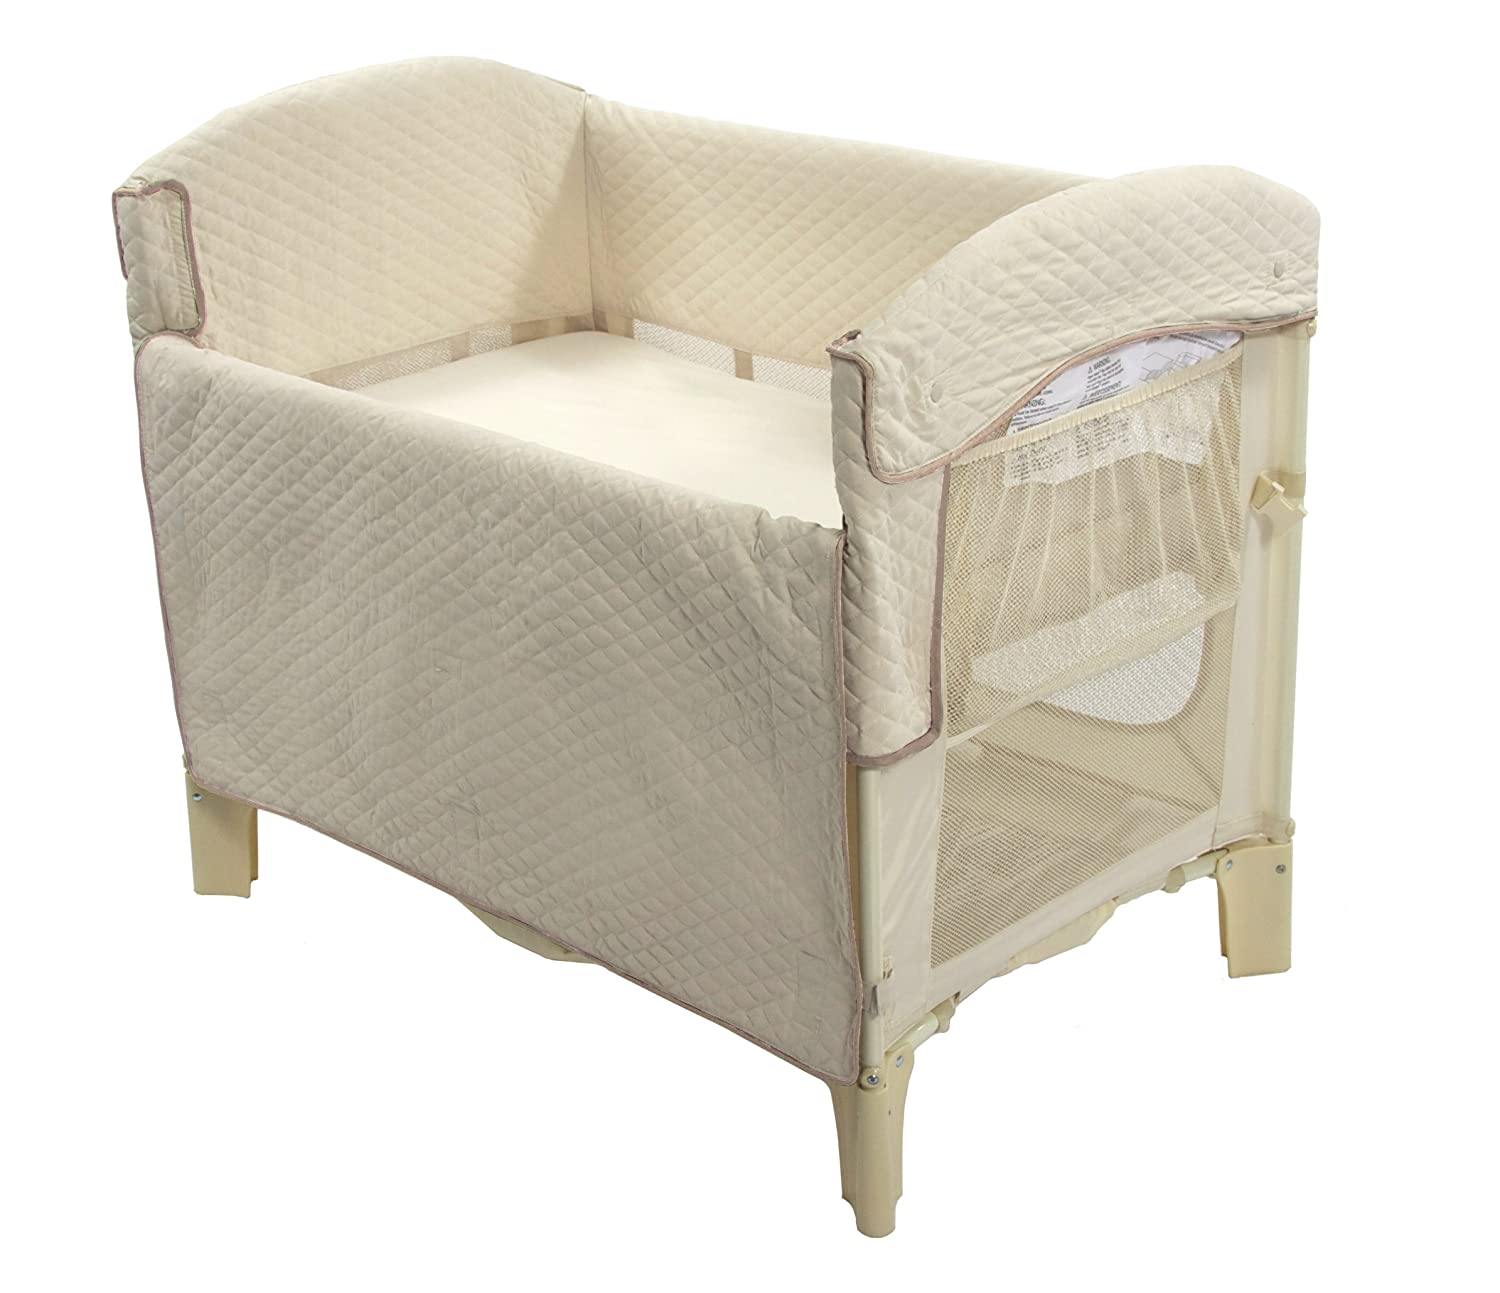 Amazon com arms reach ideal arc original co sleeper bedside bassinet natural baby